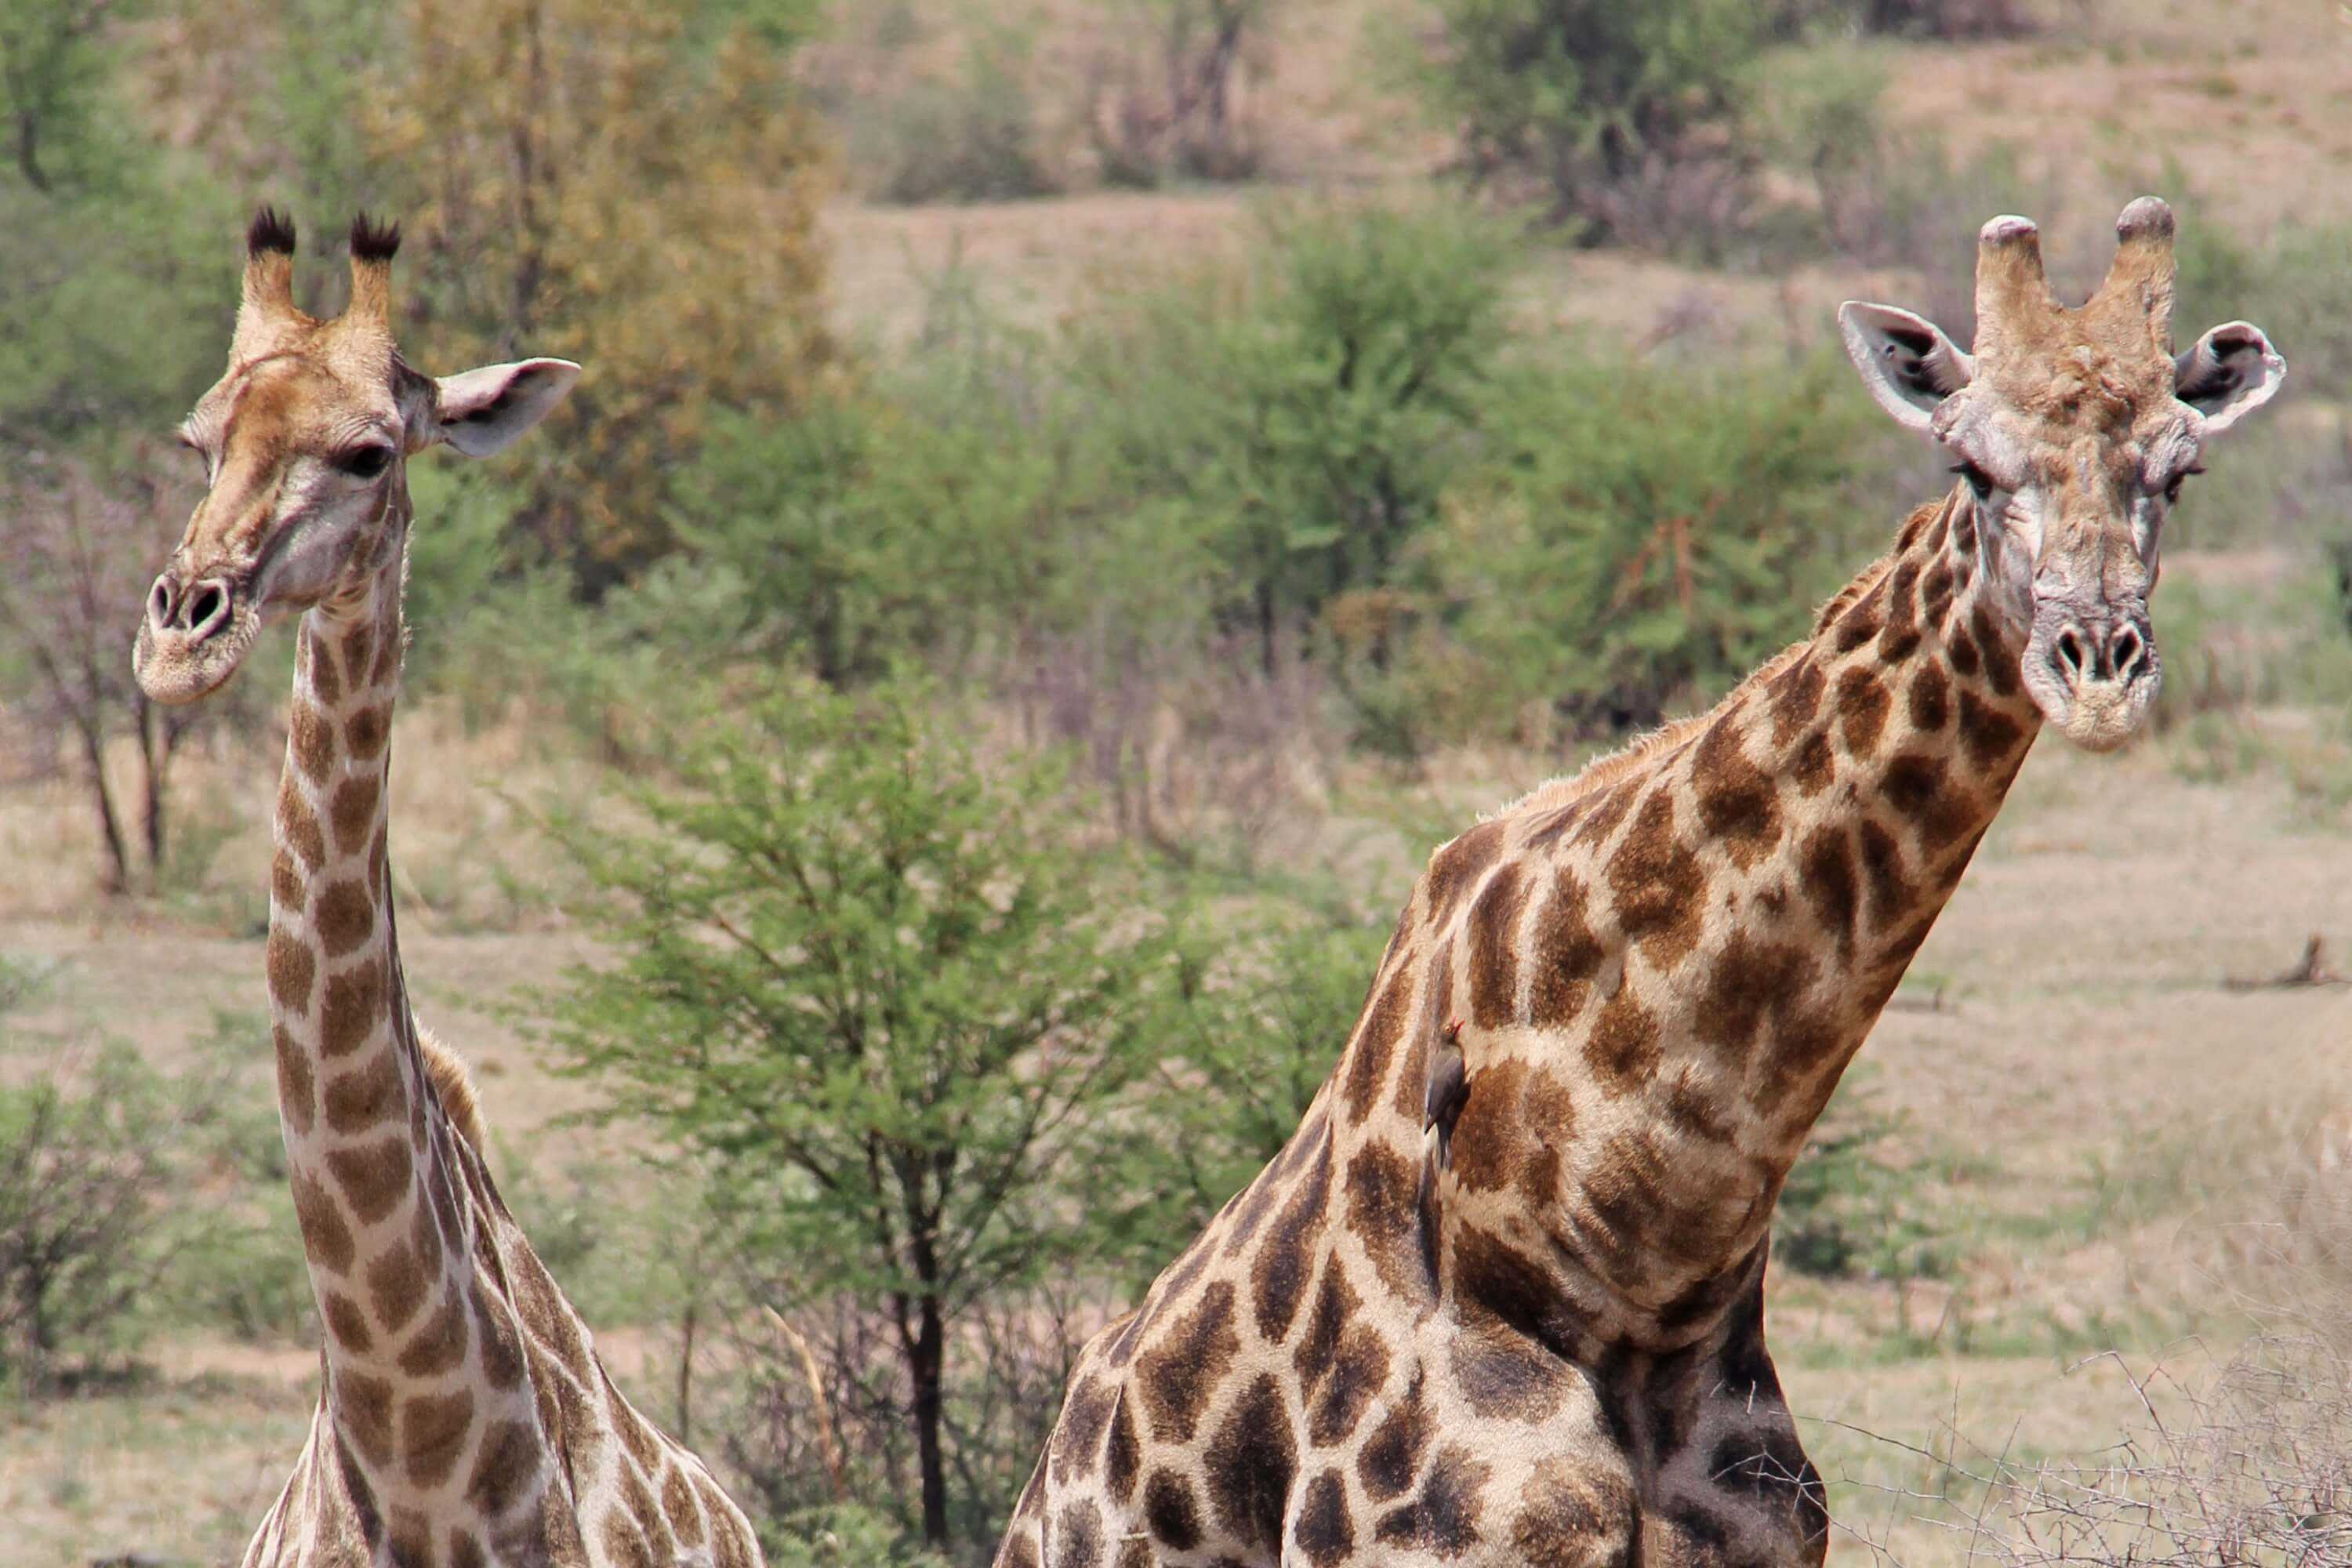 South Africa Holidays Giraffes Pilanesberg National Park